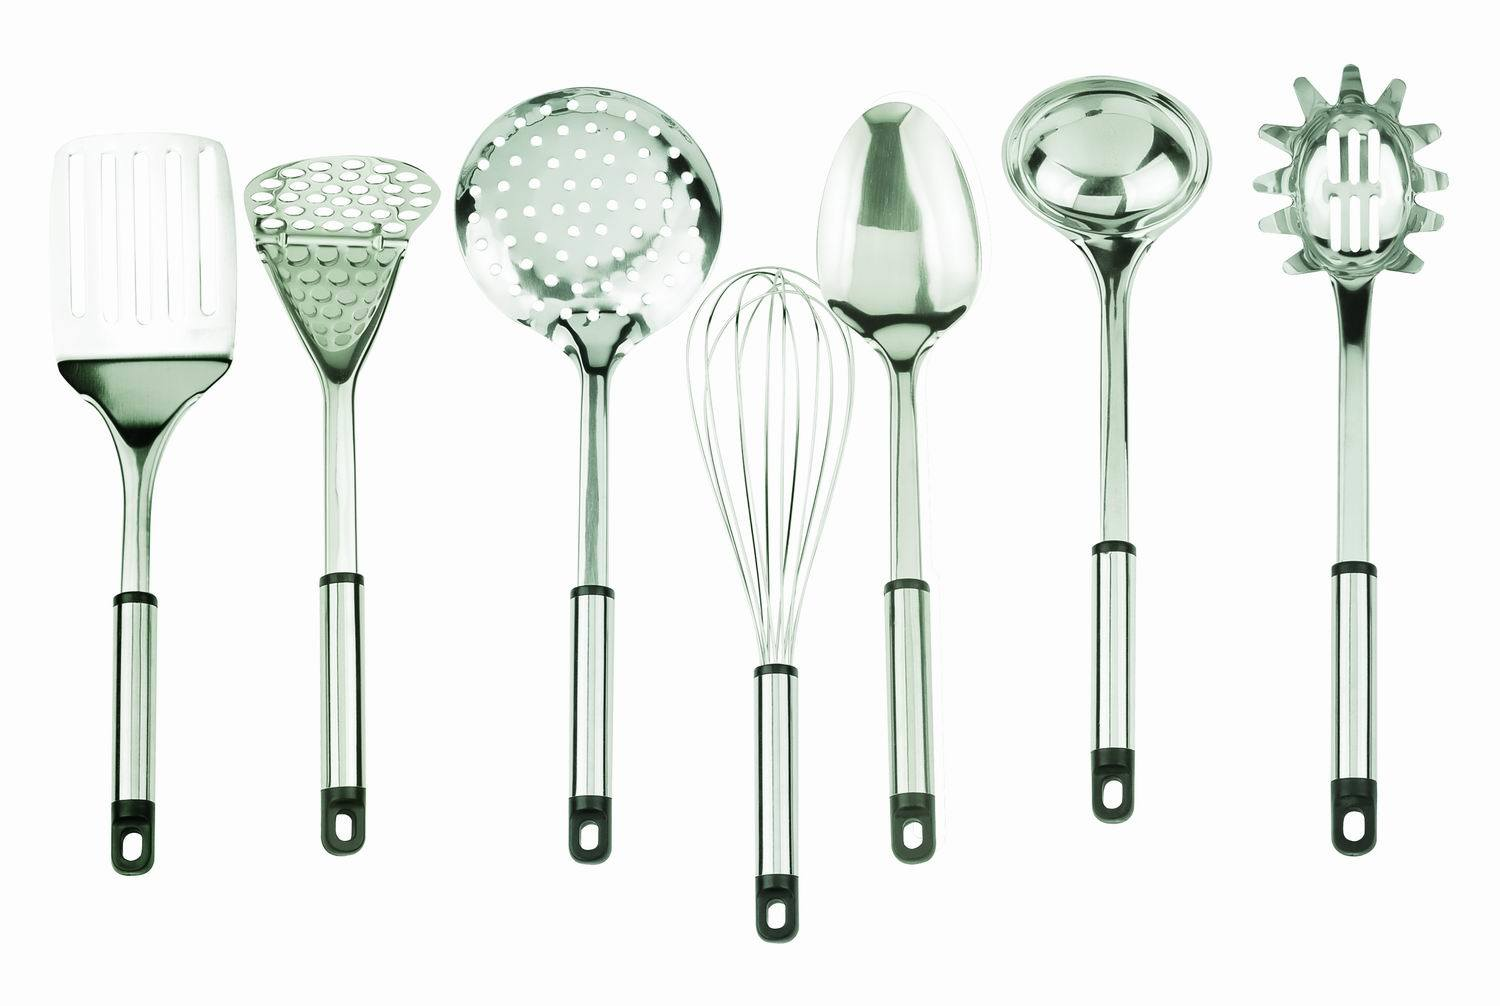 KITCHEN UTENSILS PICTURES | KITCHEN SITE